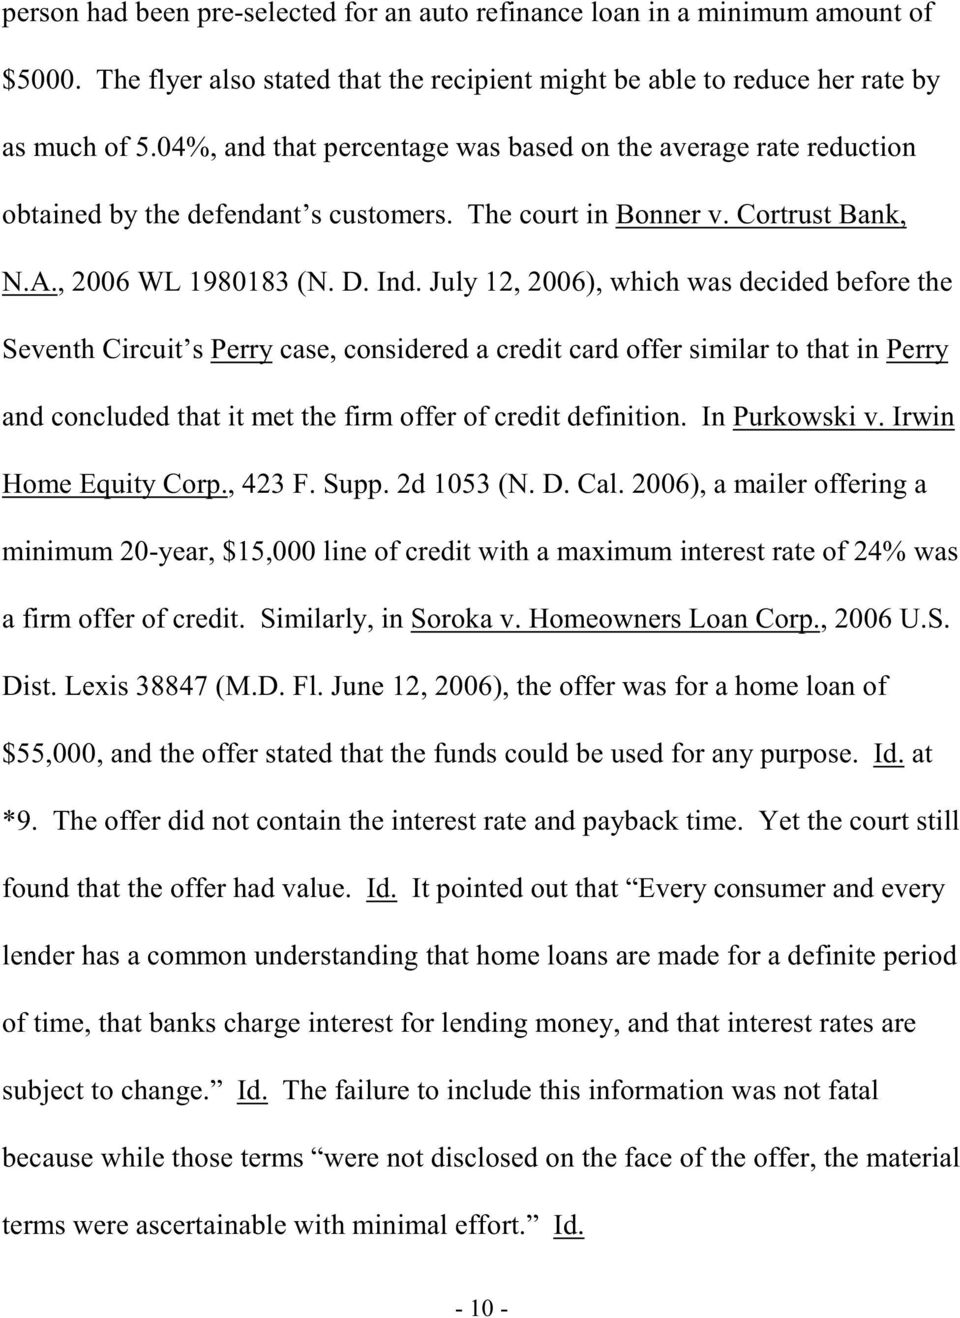 July 12, 2006), which was decided before the Seventh Circuit s Perry case, considered a credit card offer similar to that in Perry and concluded that it met the firm offer of credit definition.